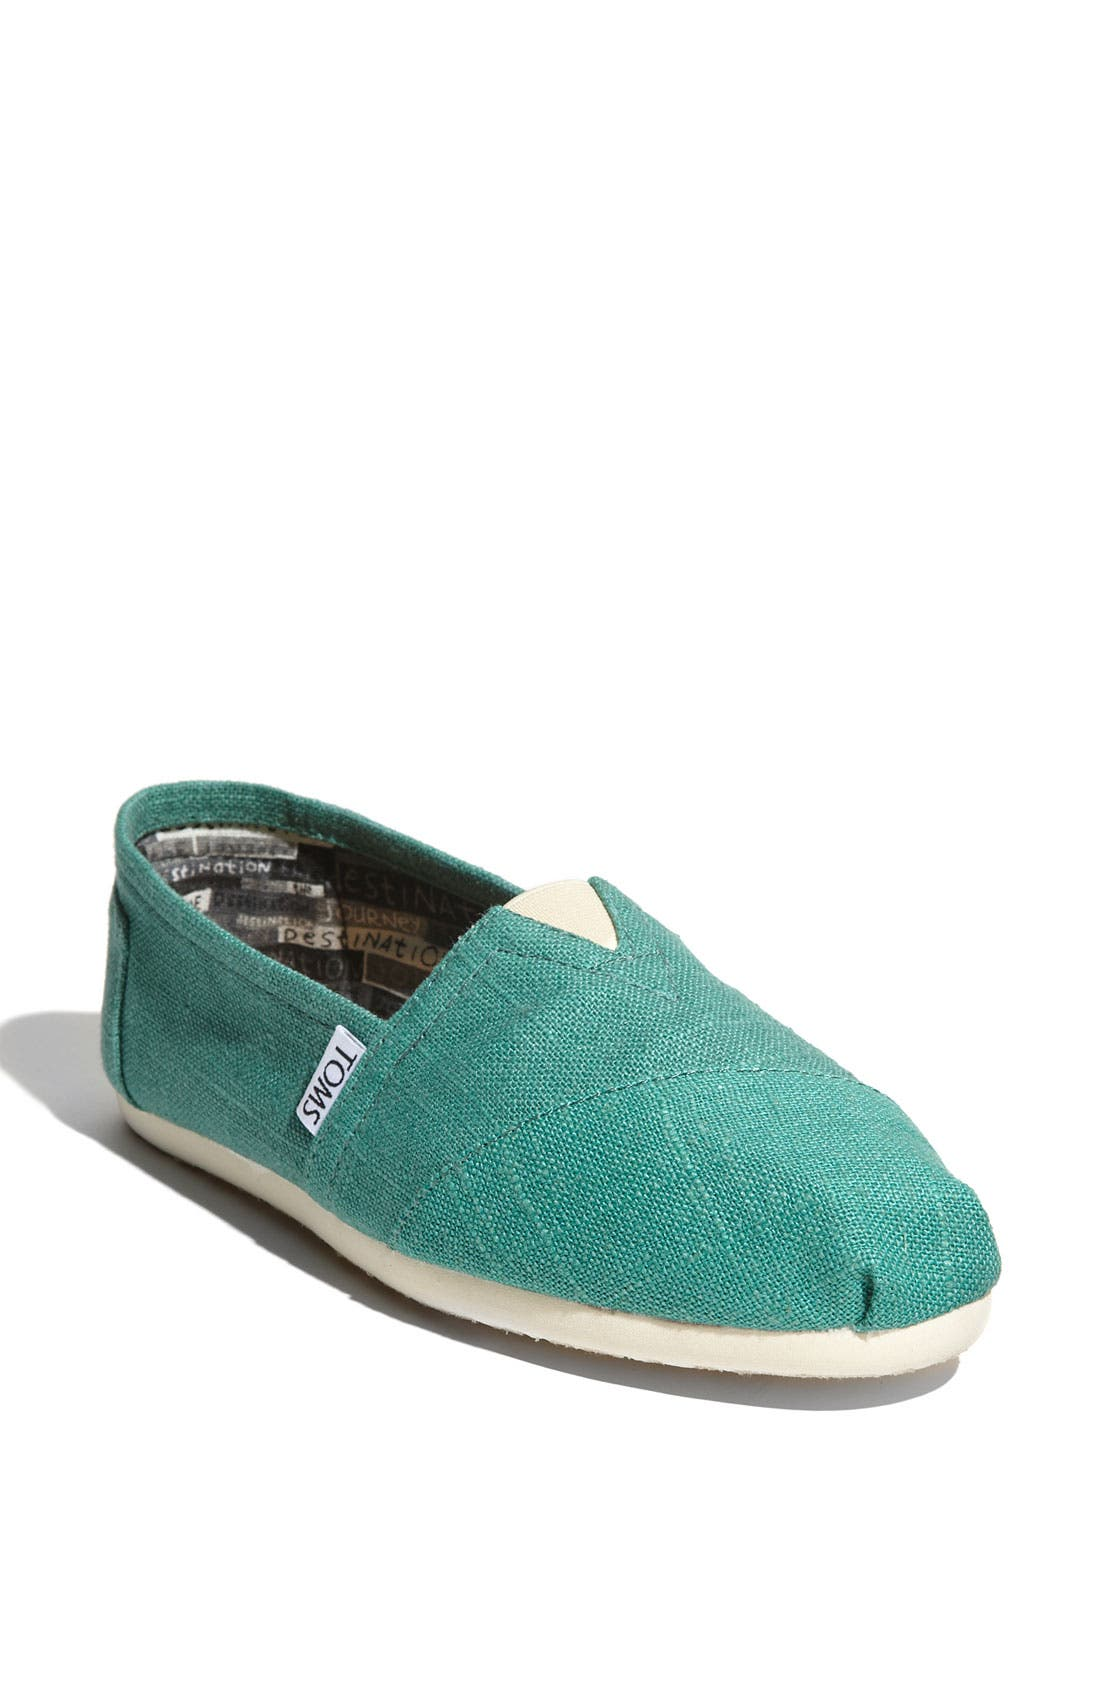 Alternate Image 1 Selected - TOMS 'Classic' Linen Slip-On (Women)